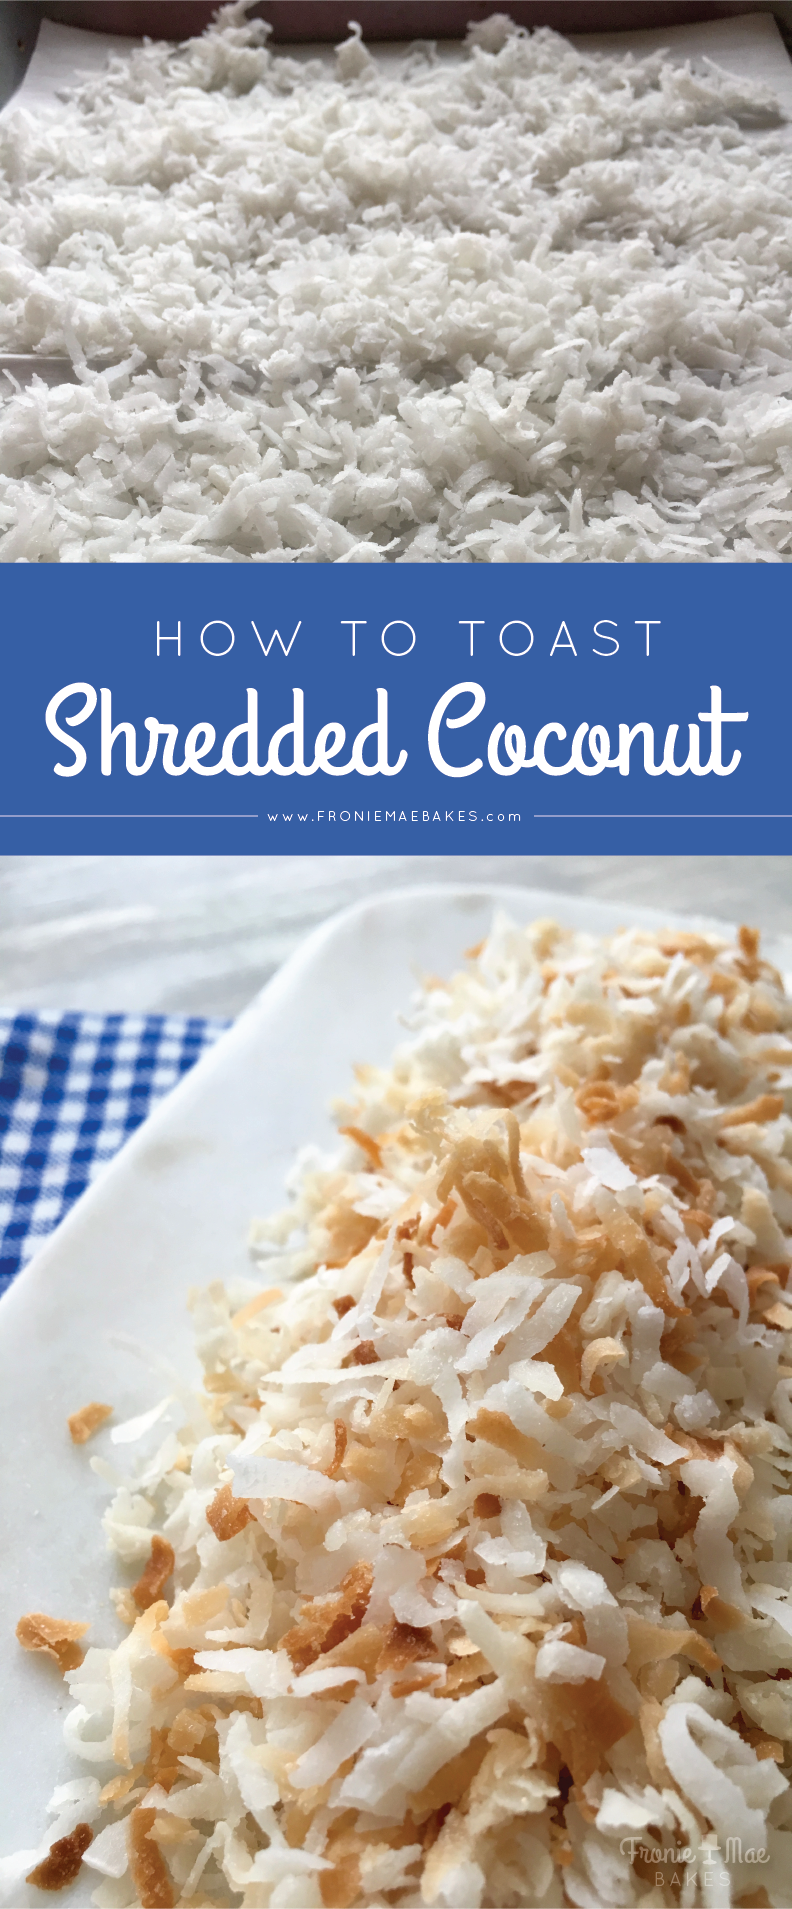 The Easy Way To Toast Shredded Coconut by Fronie Mae Bakes. www.froniemaebakes.com